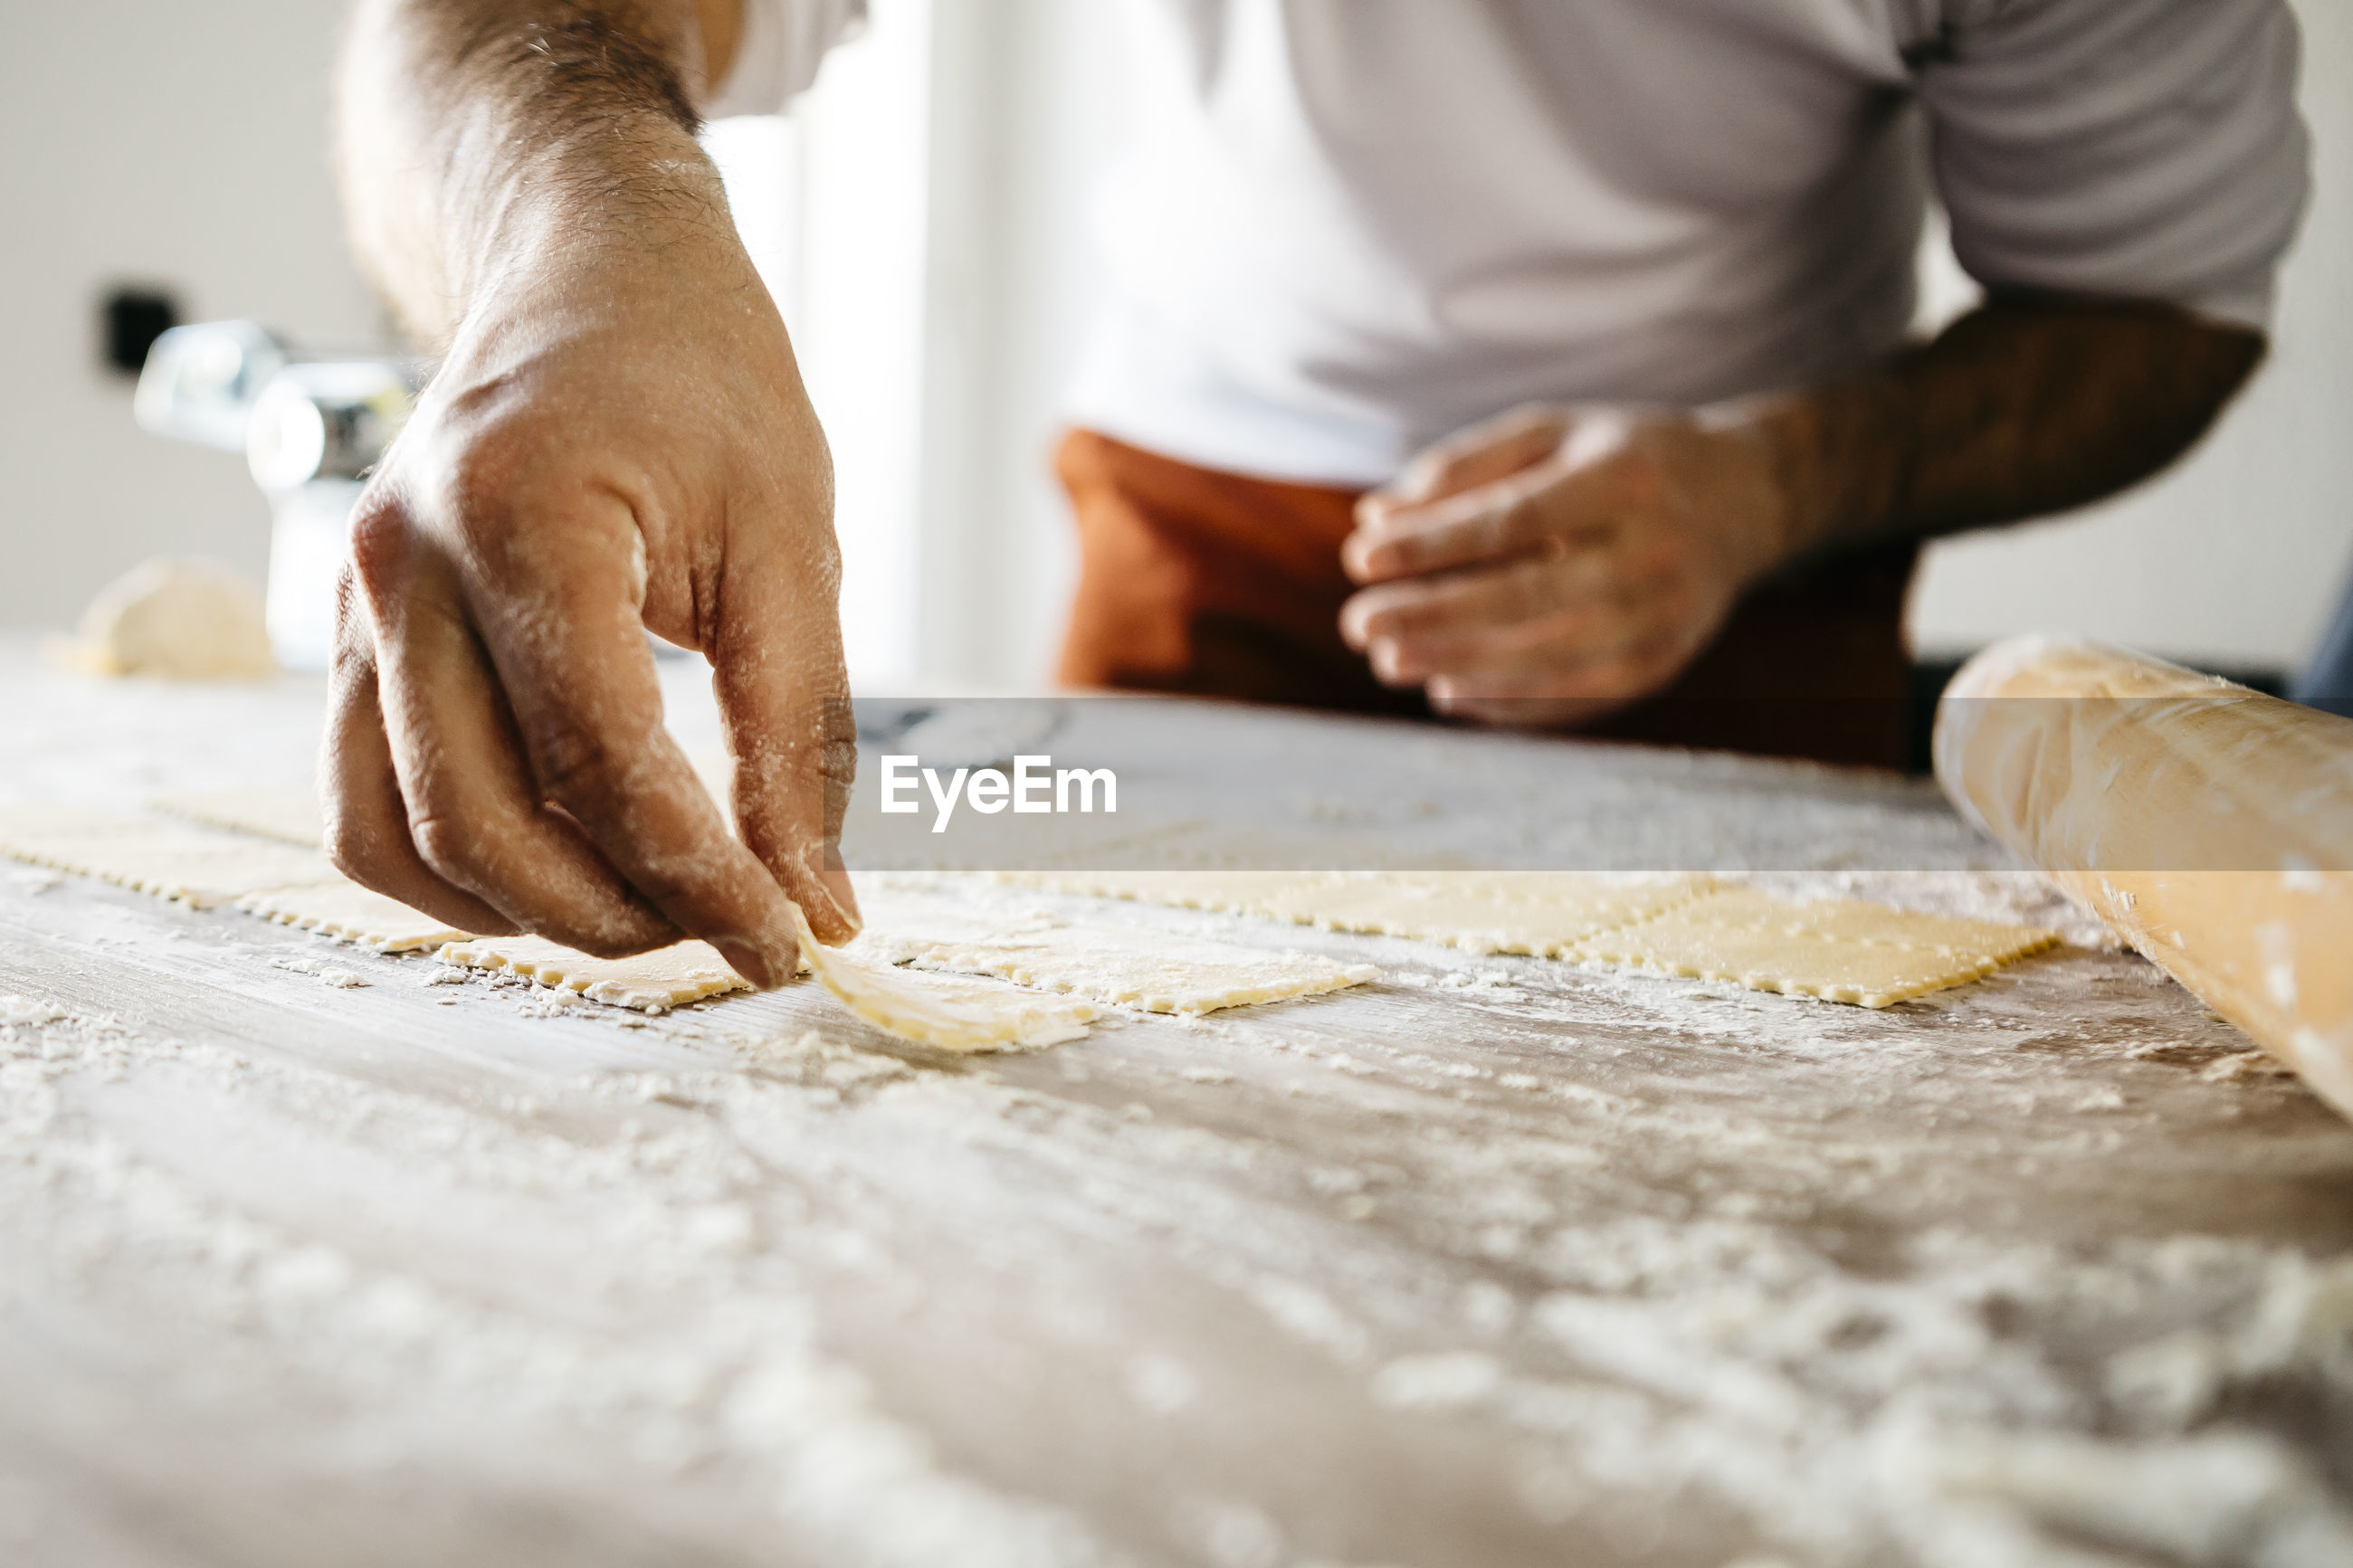 Midsection of male chef preparing food on table